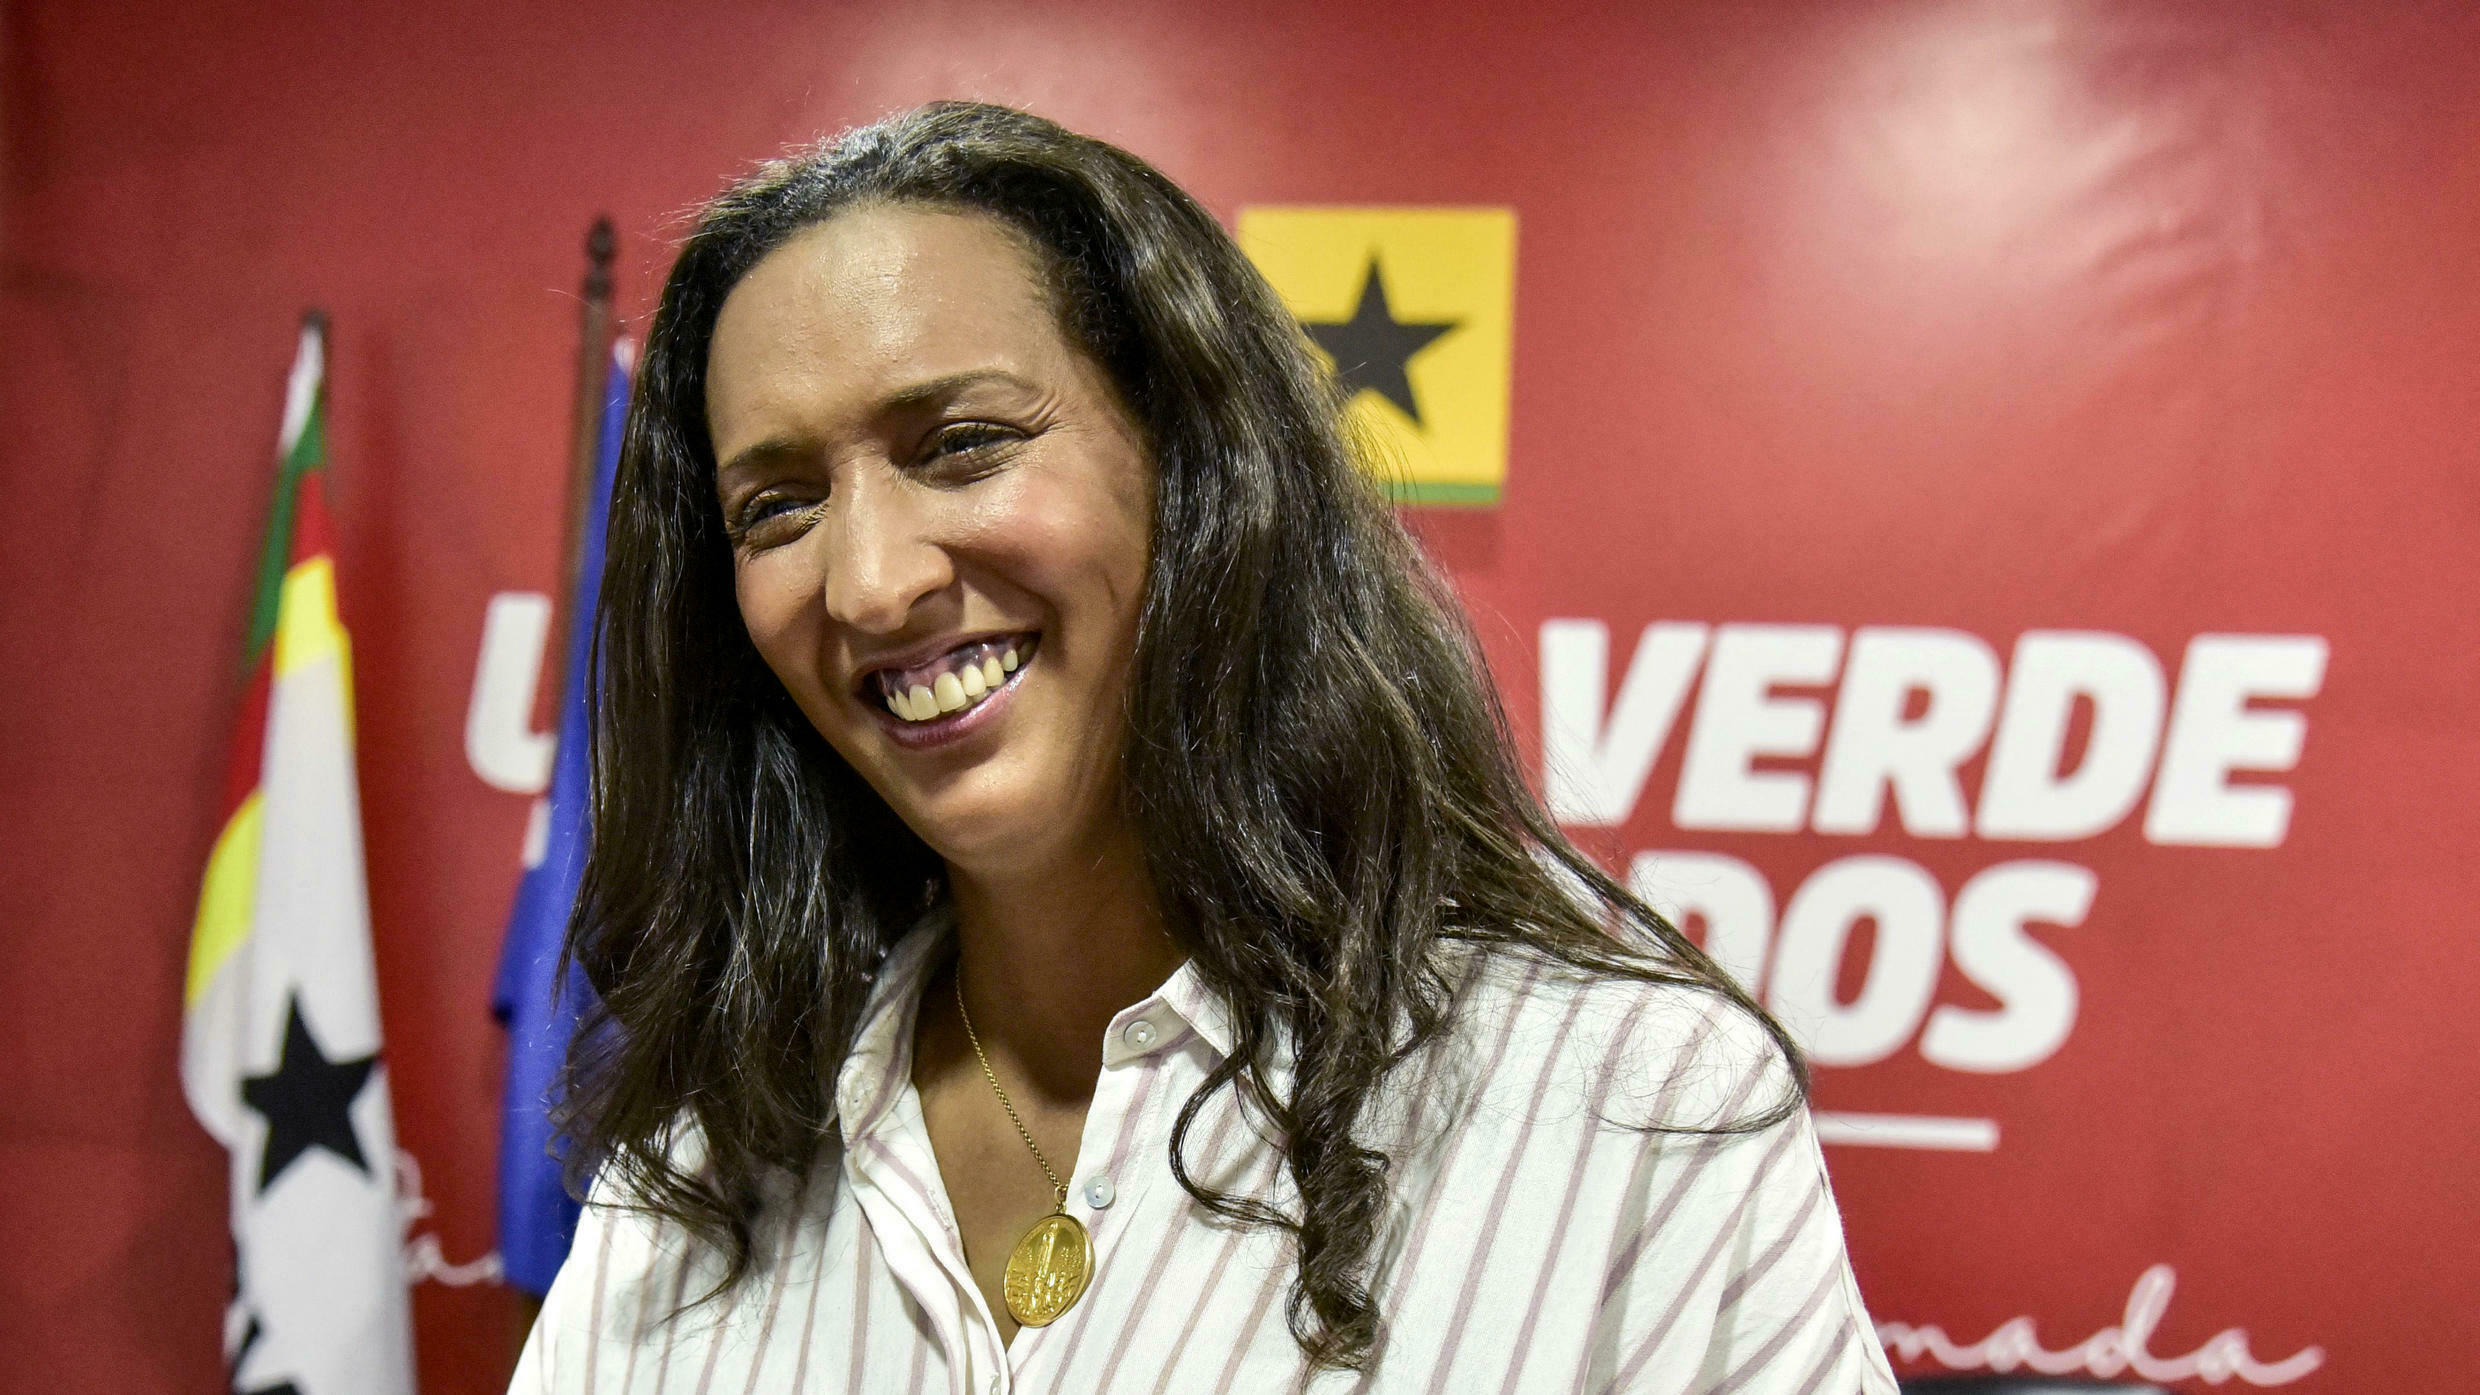 Janira Hopffer Almada, leader of the PAICV, smiles during an interview at her party's office in Praia on 16 April 2021.